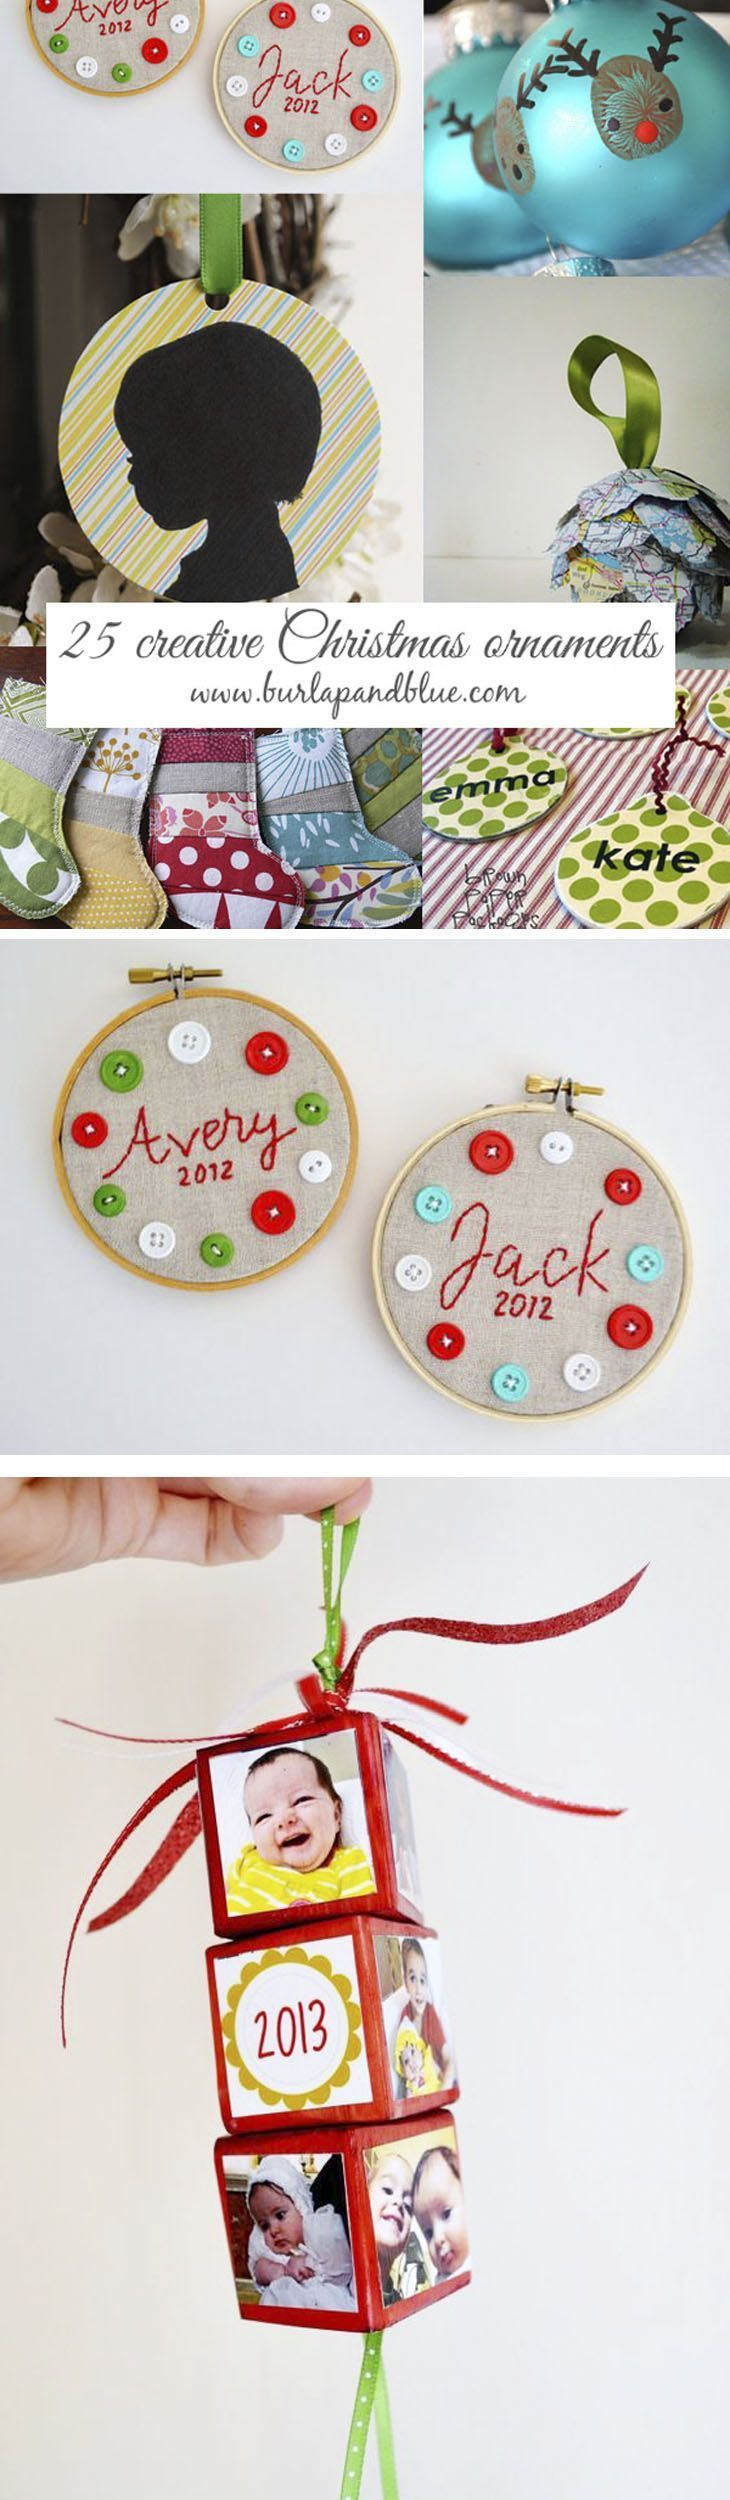 811 best Christmas Crafts, DIY and Home Decor images on Pinterest ...